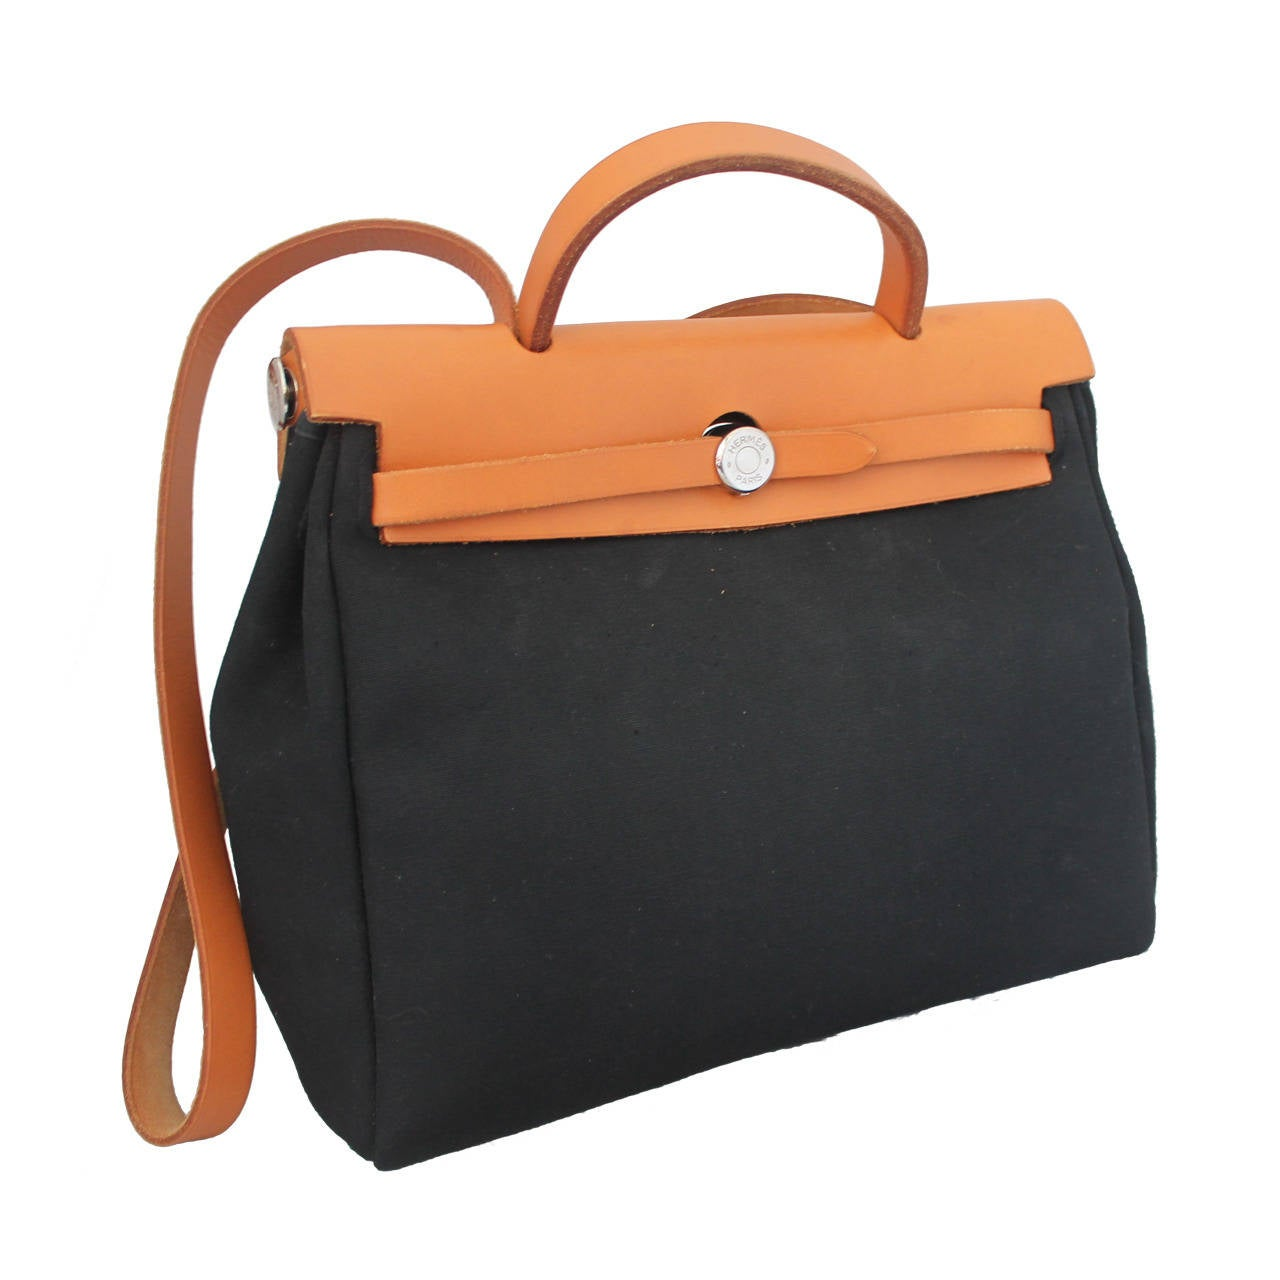 Hermes 2000 Black and Ivory 31 cm Her Bag w/ Tan Leather at 1stdibs